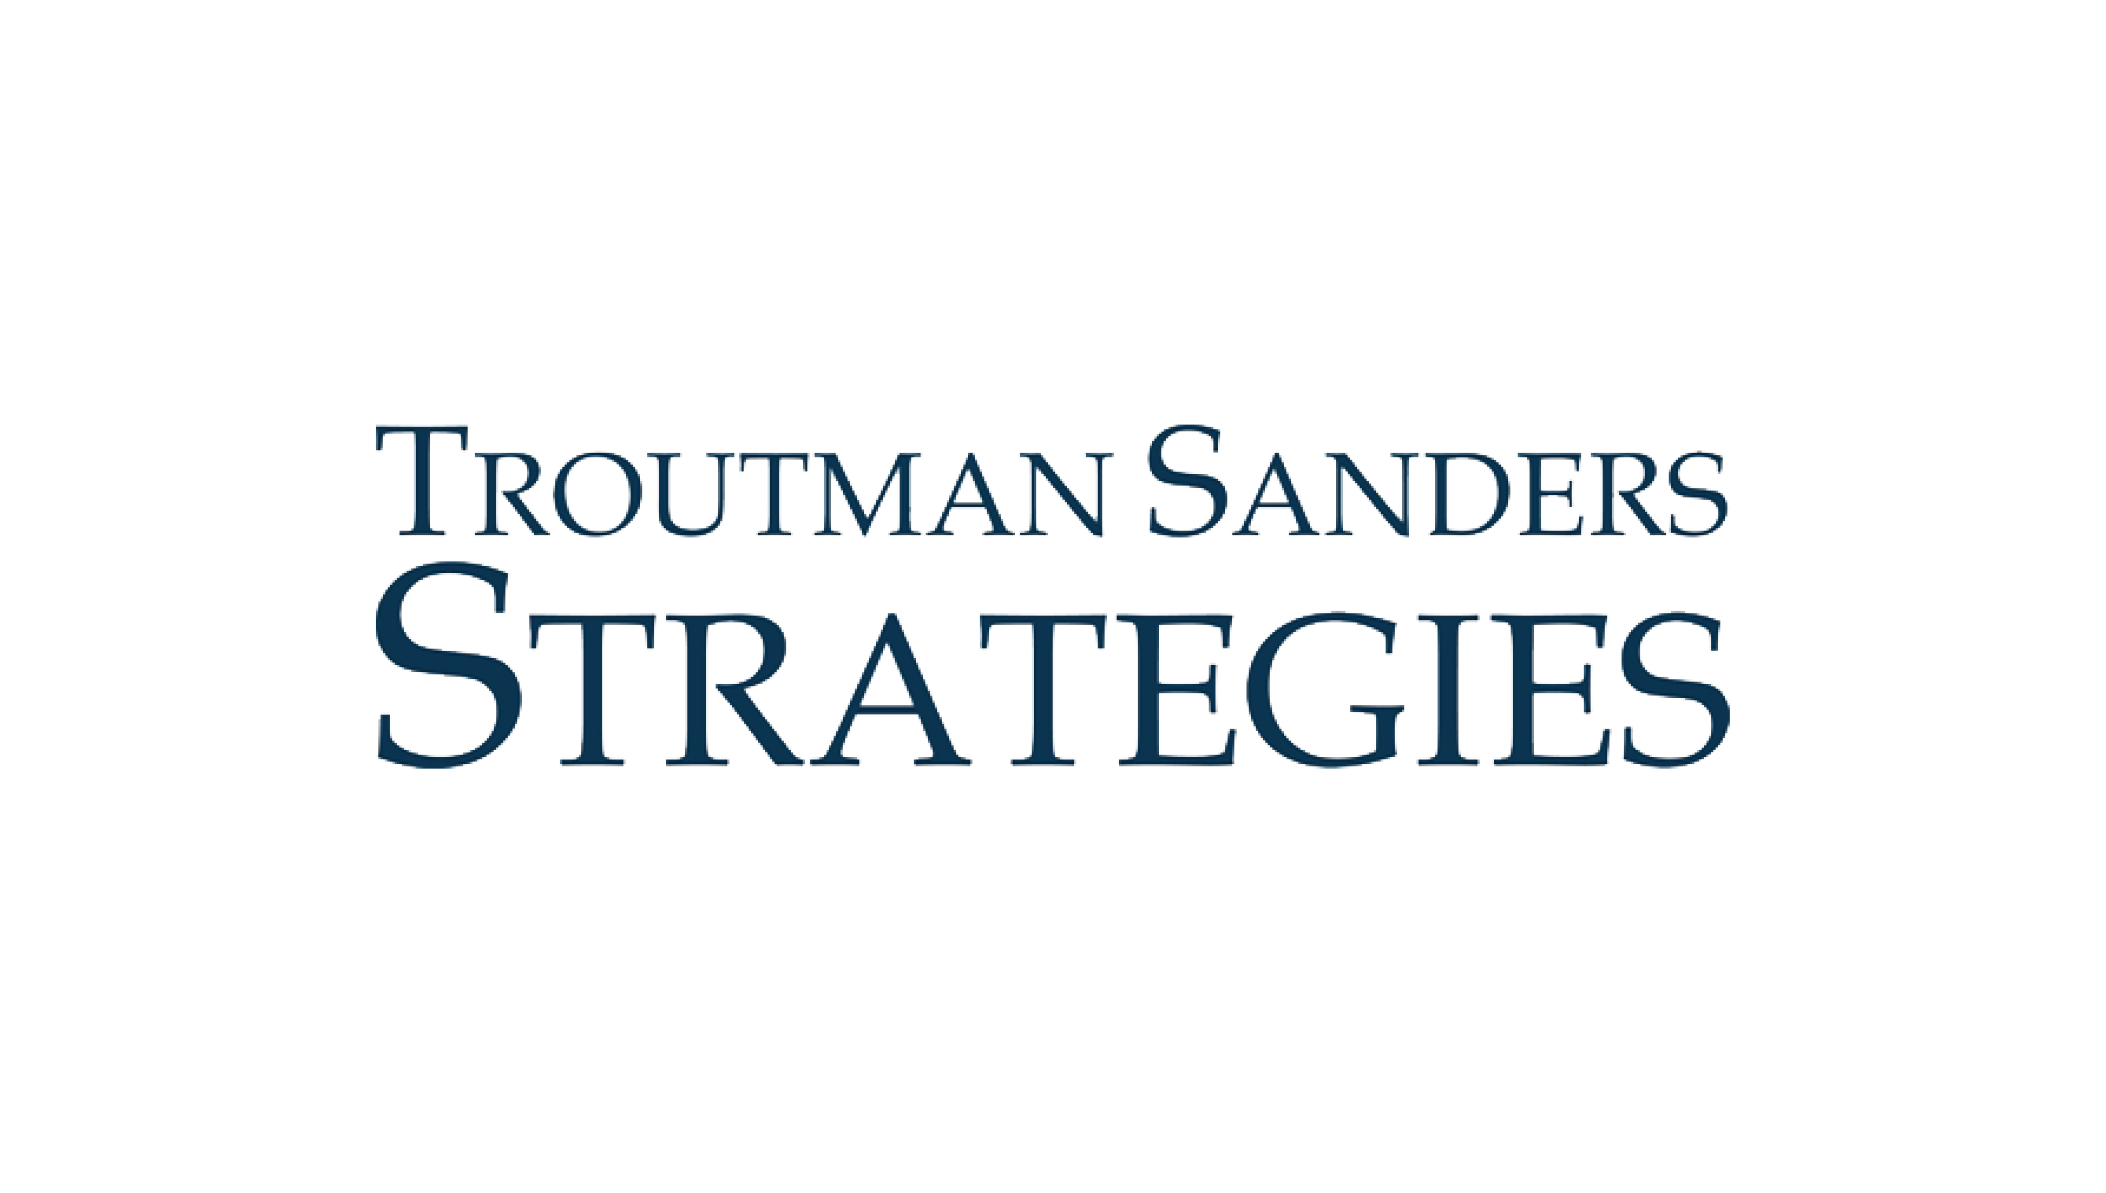 Troutman Sanders Strategies